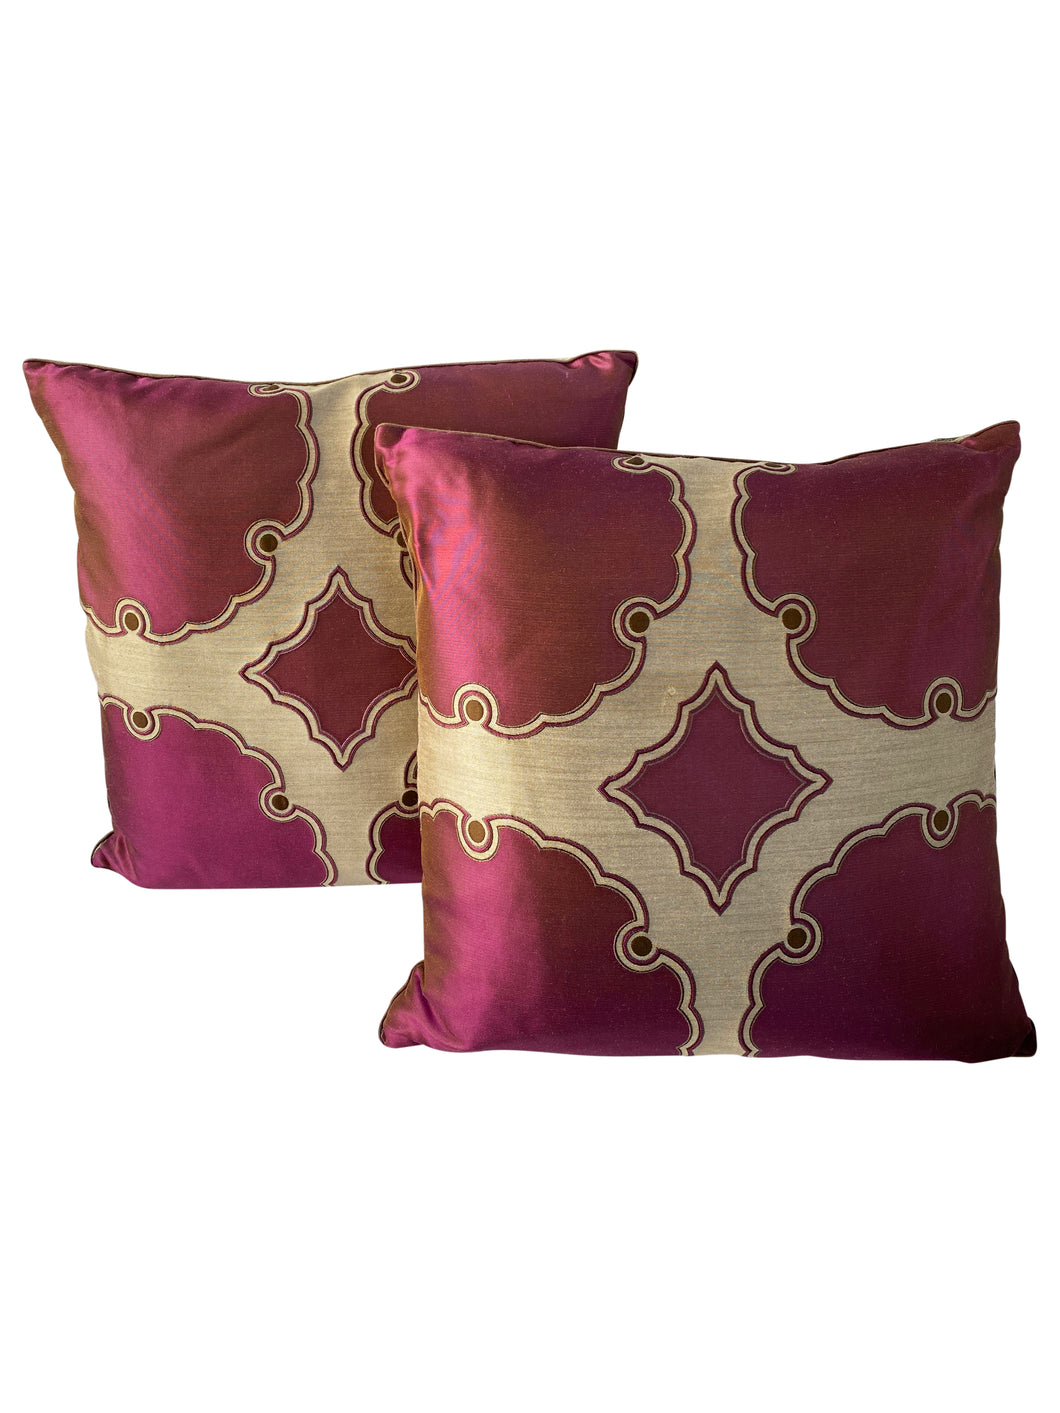 Dransfield & Ross Gothic Decorative Accent Pillows (Pair)